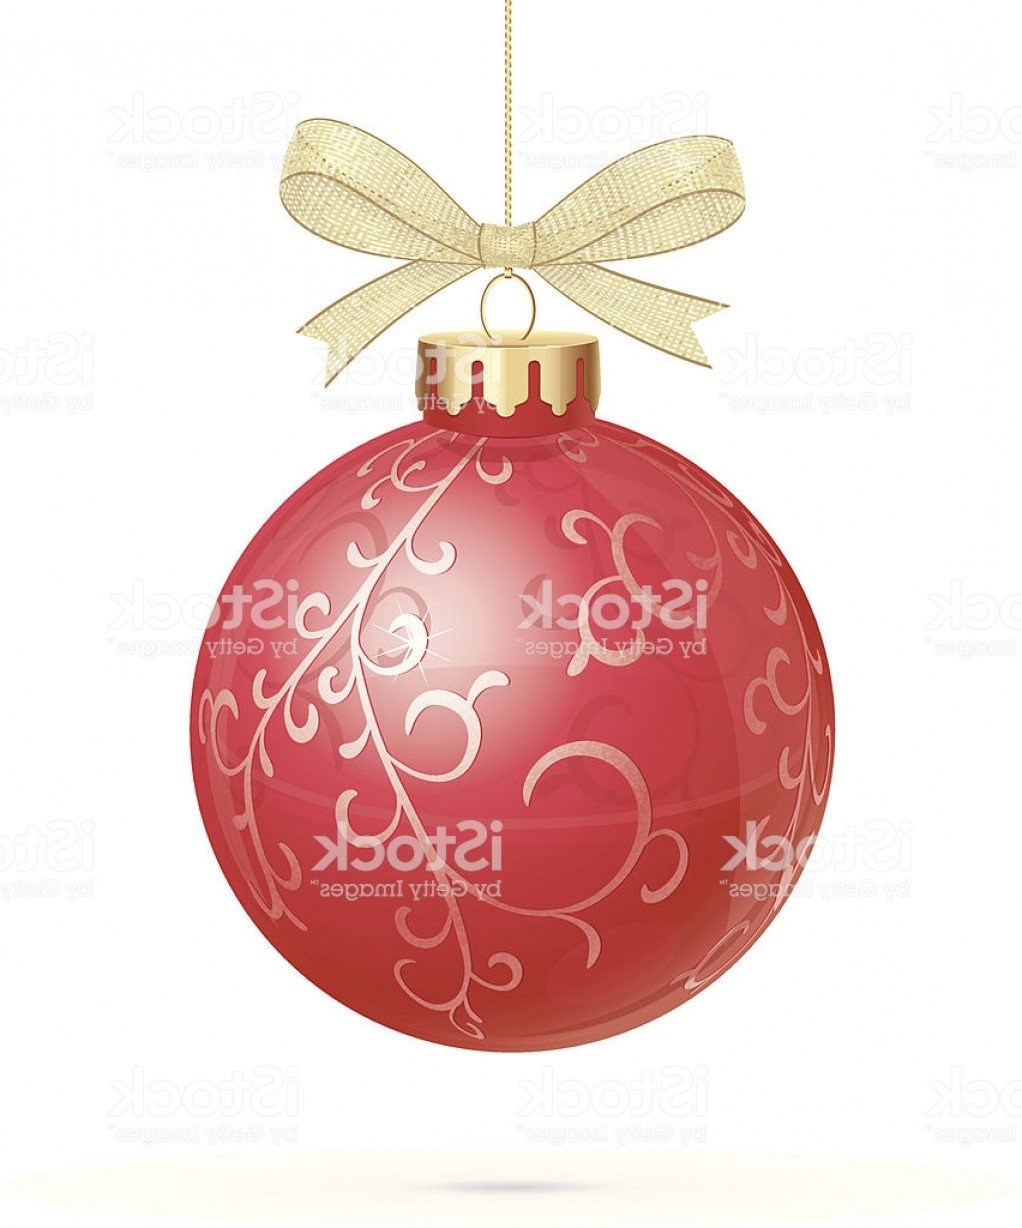 3 Glass Christmas Bulb Vector: Red Christmas Bauble With Golden Organza Ribbon Gm